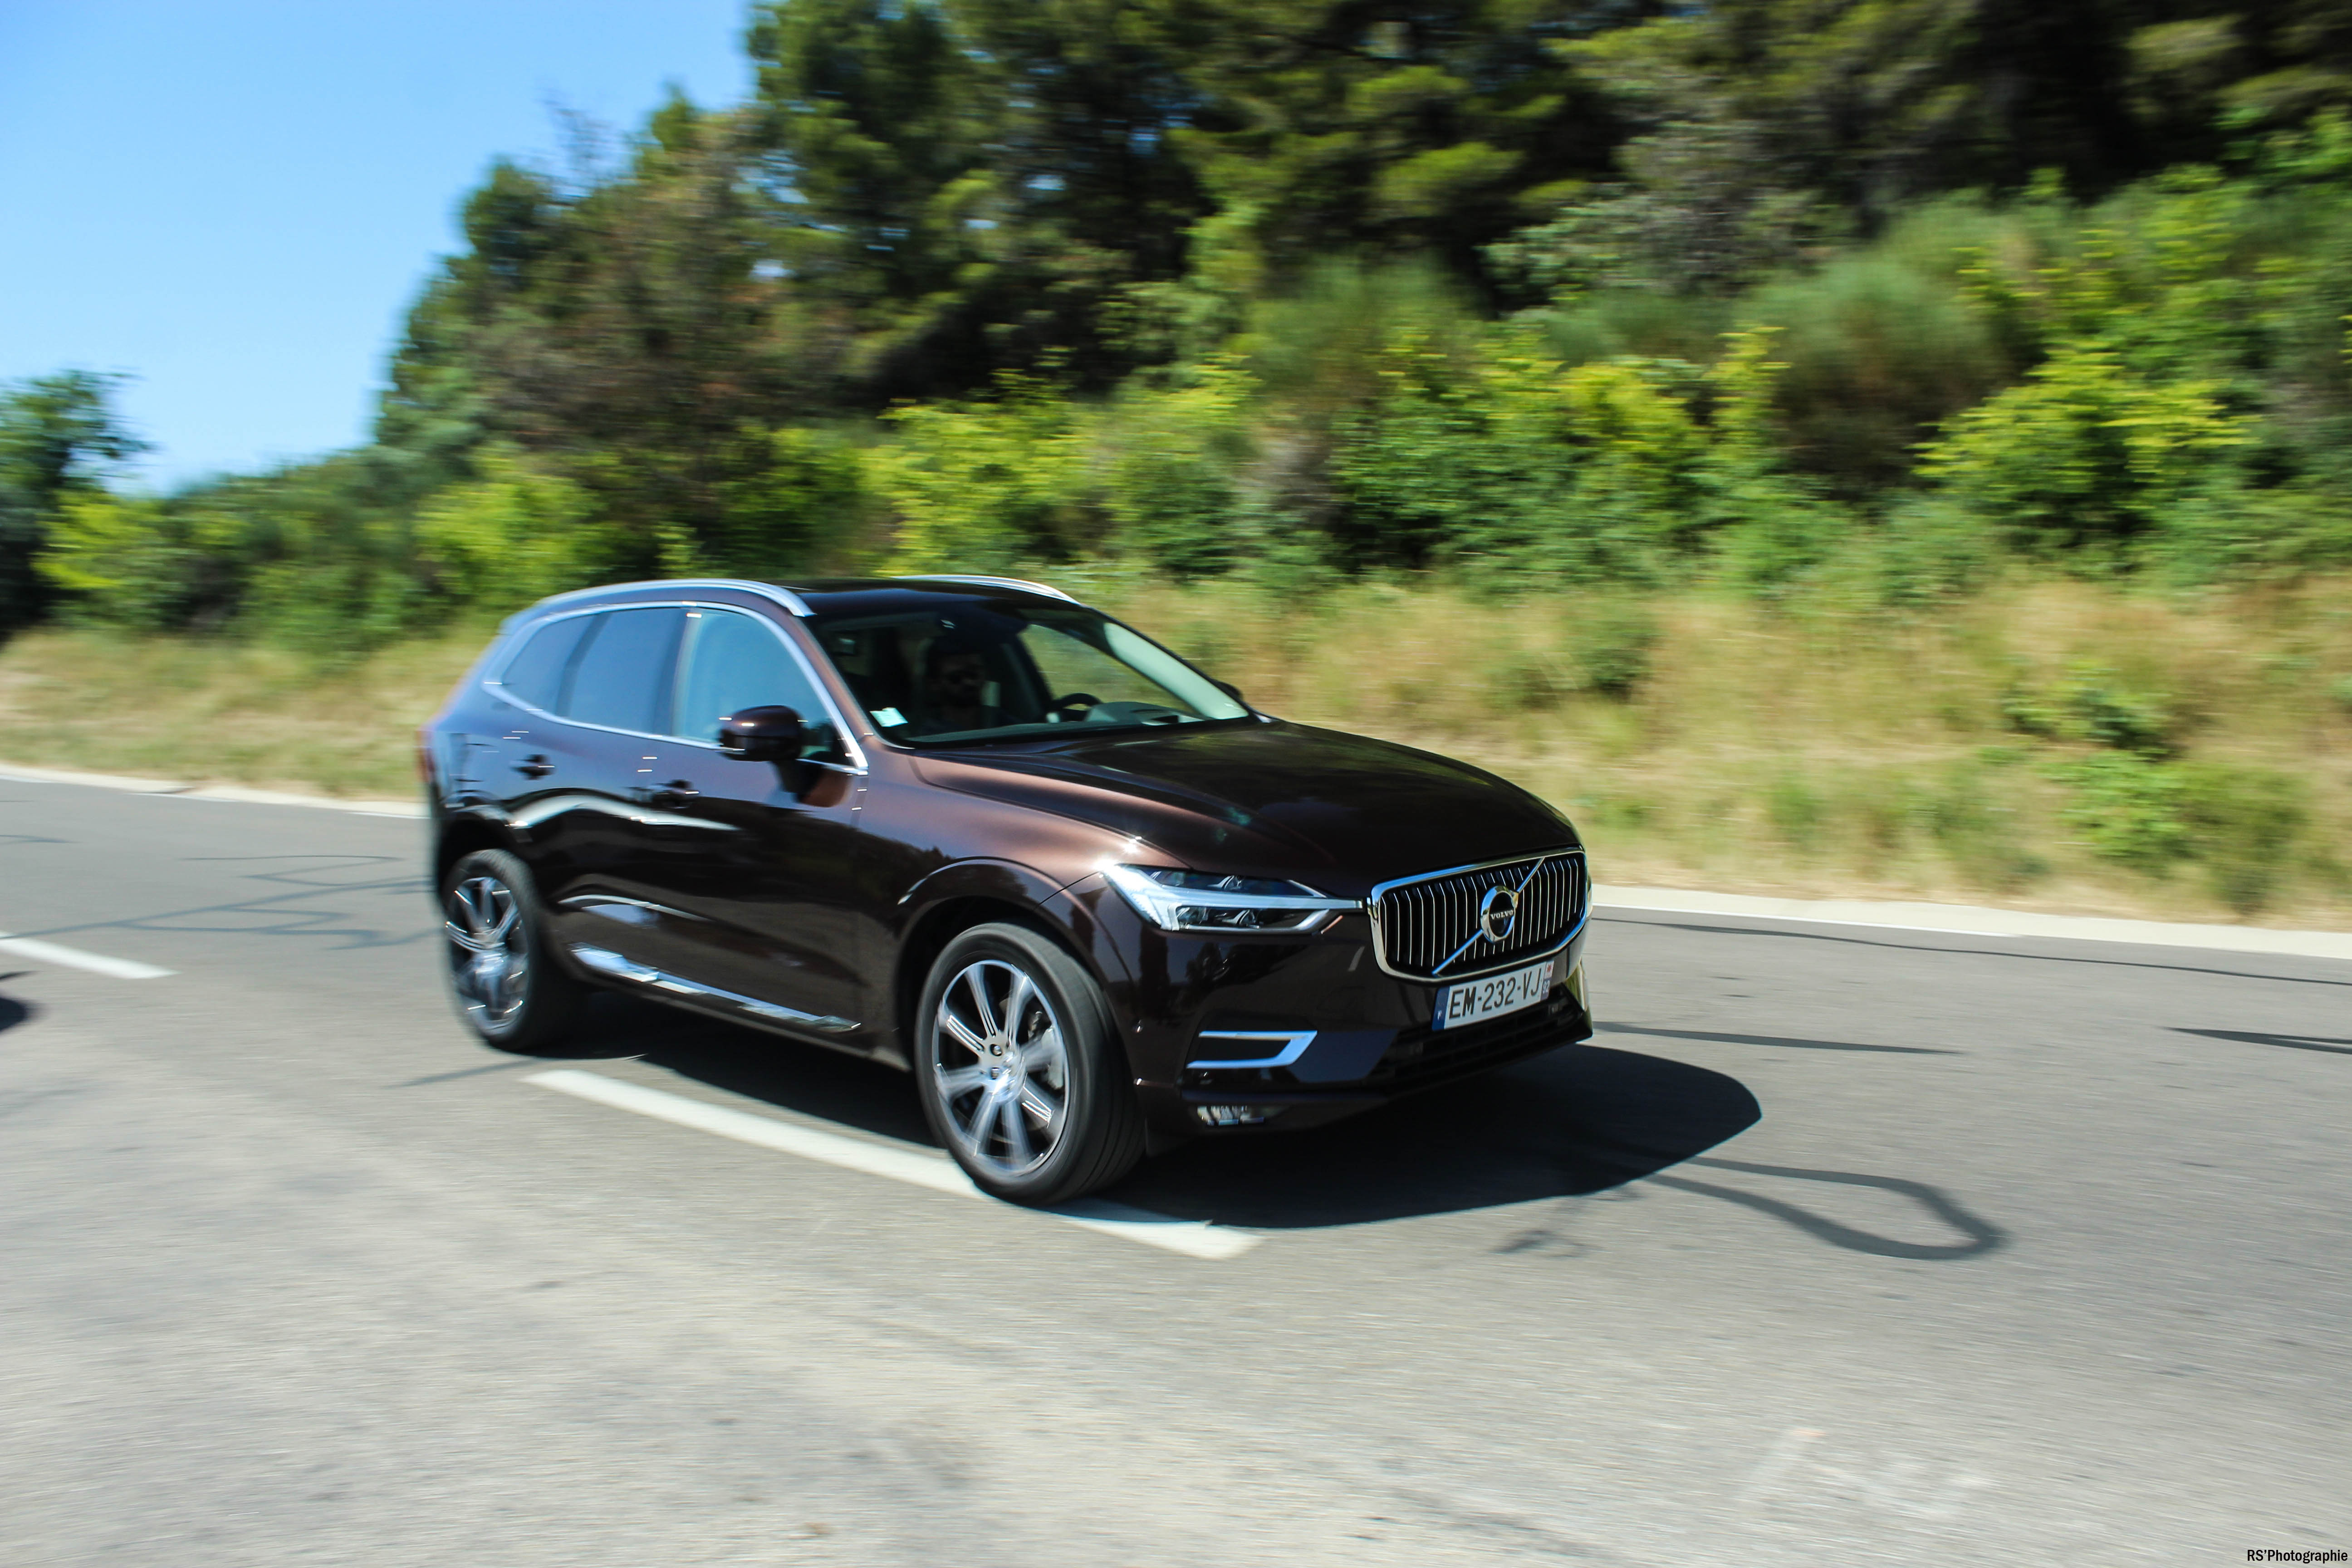 OpéVolvo7-volvo-xc60-avant-front-Arnaud Demasier-RSPhotographie